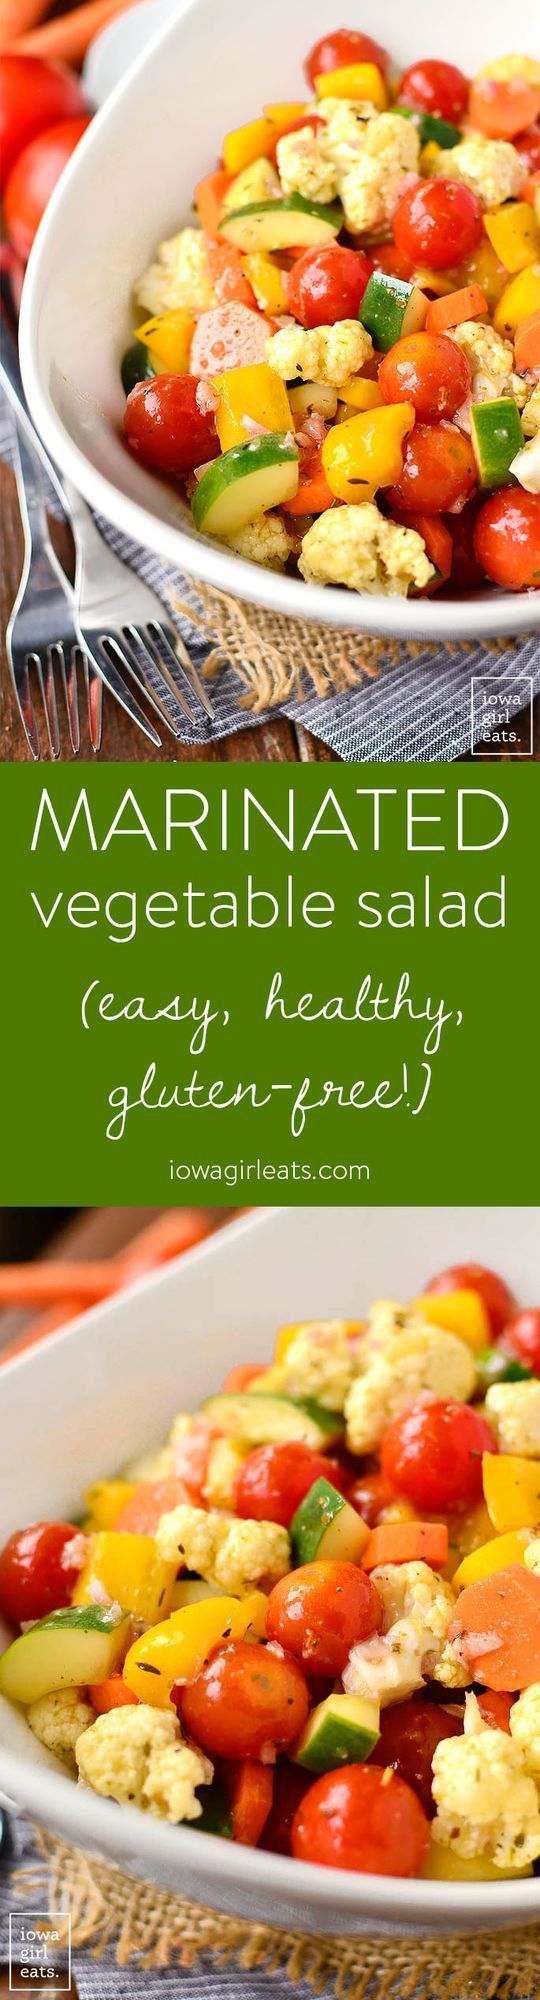 Marinated Vegetable Salad is a healthy, make-ahead salad recipe highlighting crunchy summer vegetables. Quick, easy, and fresh!  Hello, hello – happy 4th of July eve-eve…eve? Do I have too many eves i